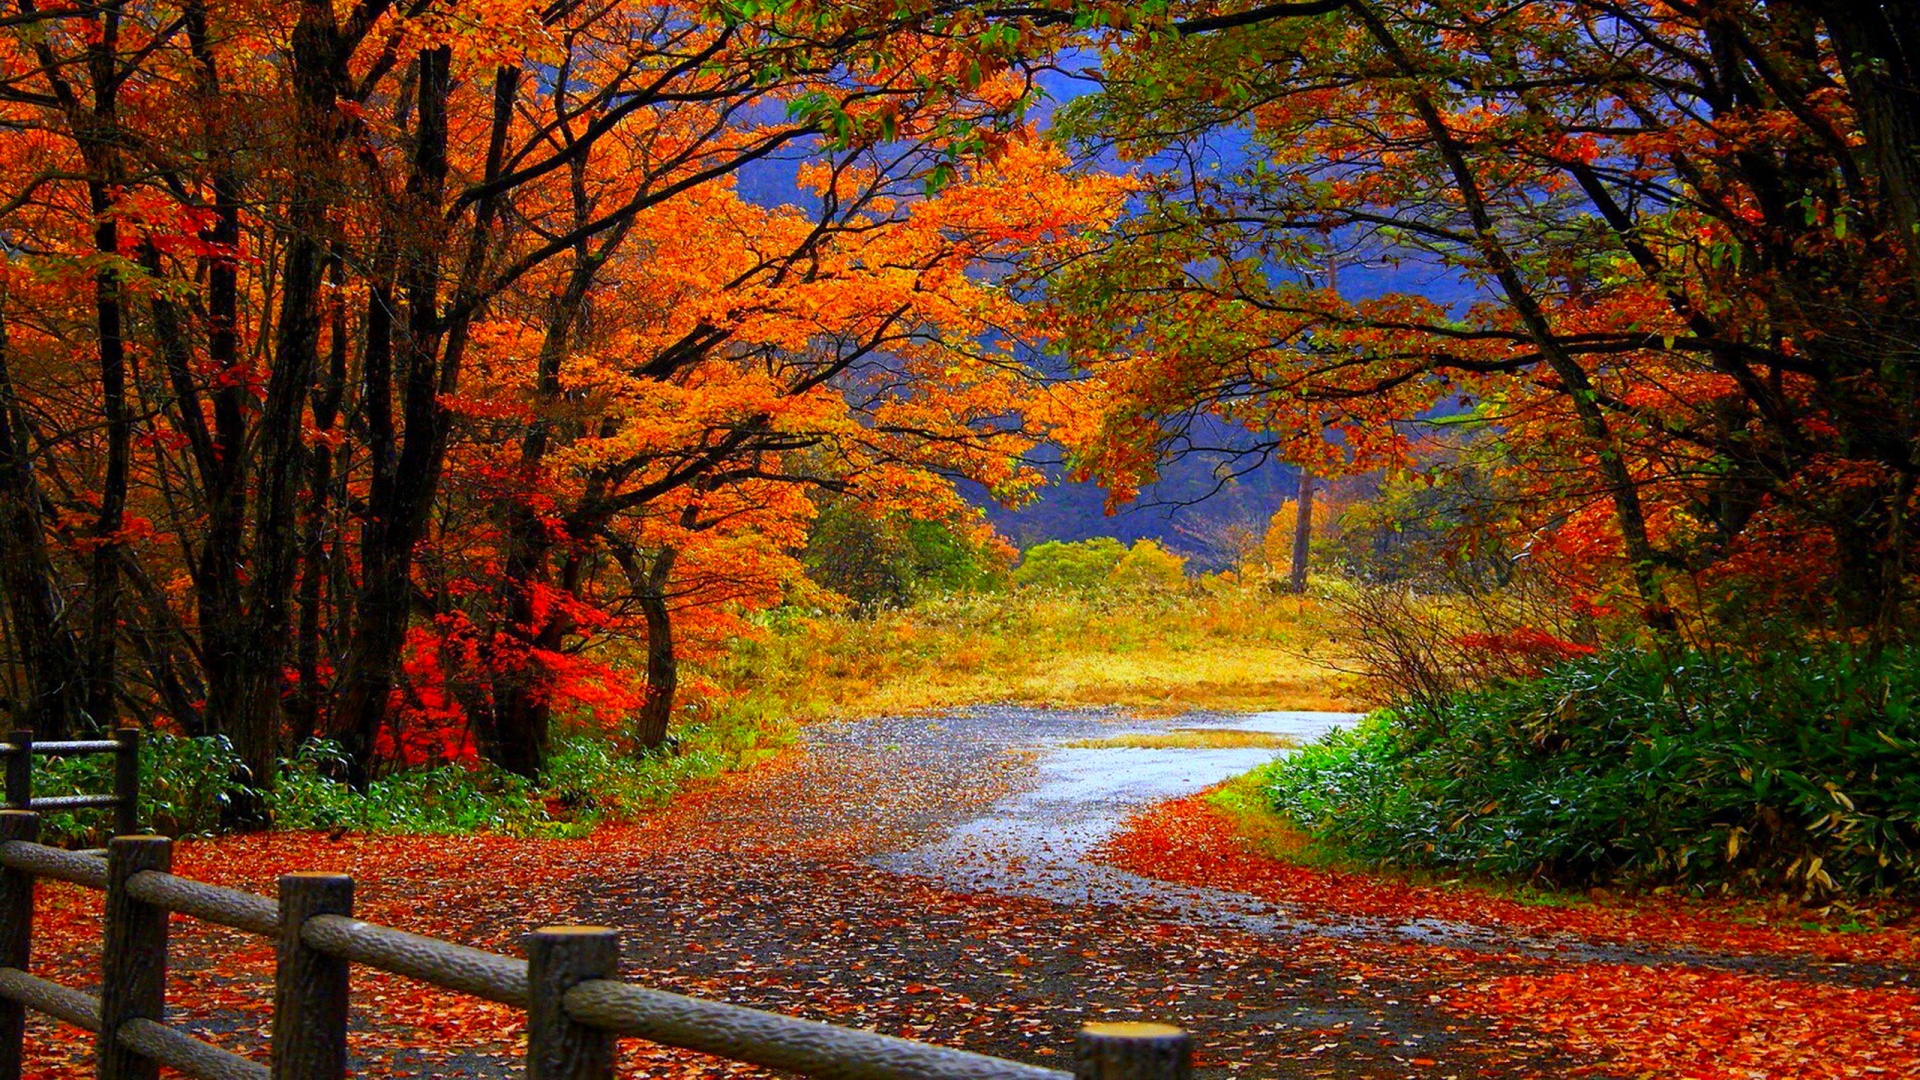 Cute Rustic Fall Wallpapers For Laptop Amazing Wallpapers Hd 1080p Pixelstalk Net